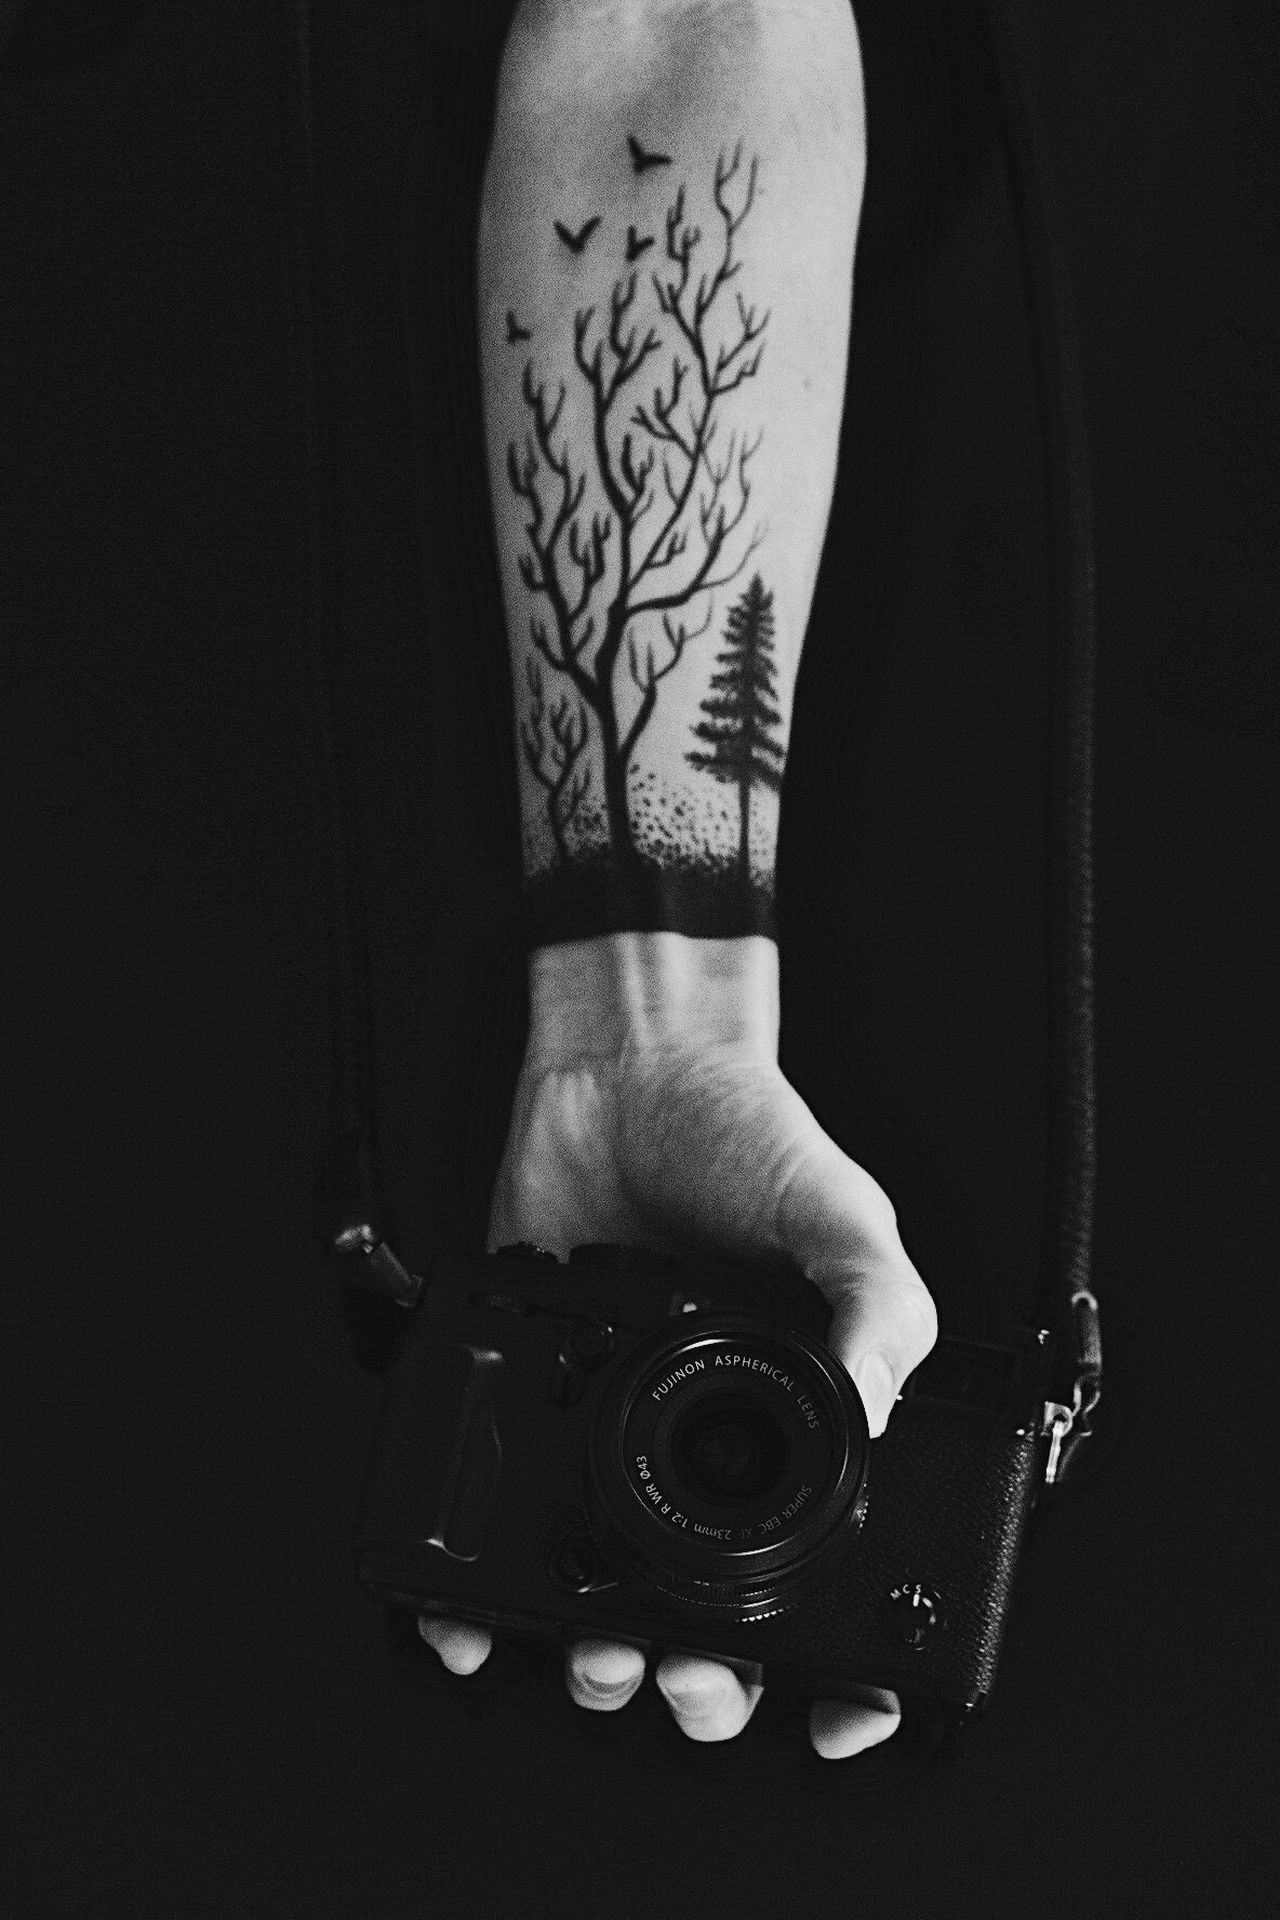 One Person Human Hand Holding Indoors  Camera - Photographic Equipment Technology Human Body Part Close-up Adult People Adults Only Day Paint Bodypaint Art Blackandwhite Monochrome Monochrome Photography Blackandwhite Photography